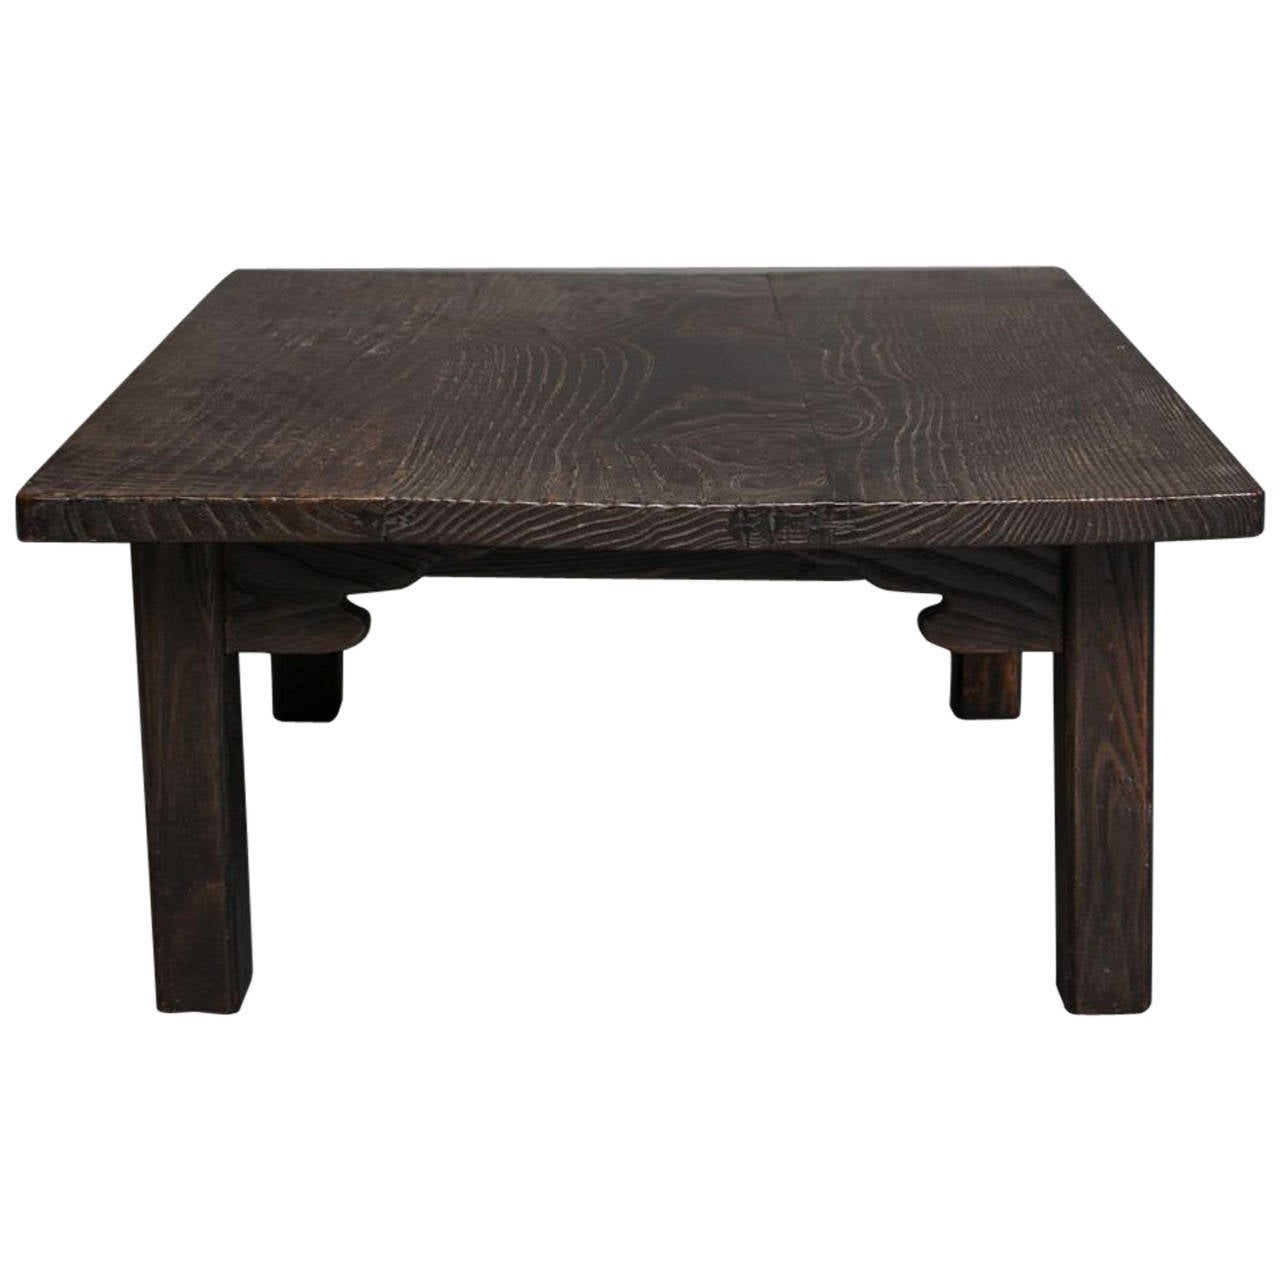 Sugi Cedar Table For Sale At 1stdibs